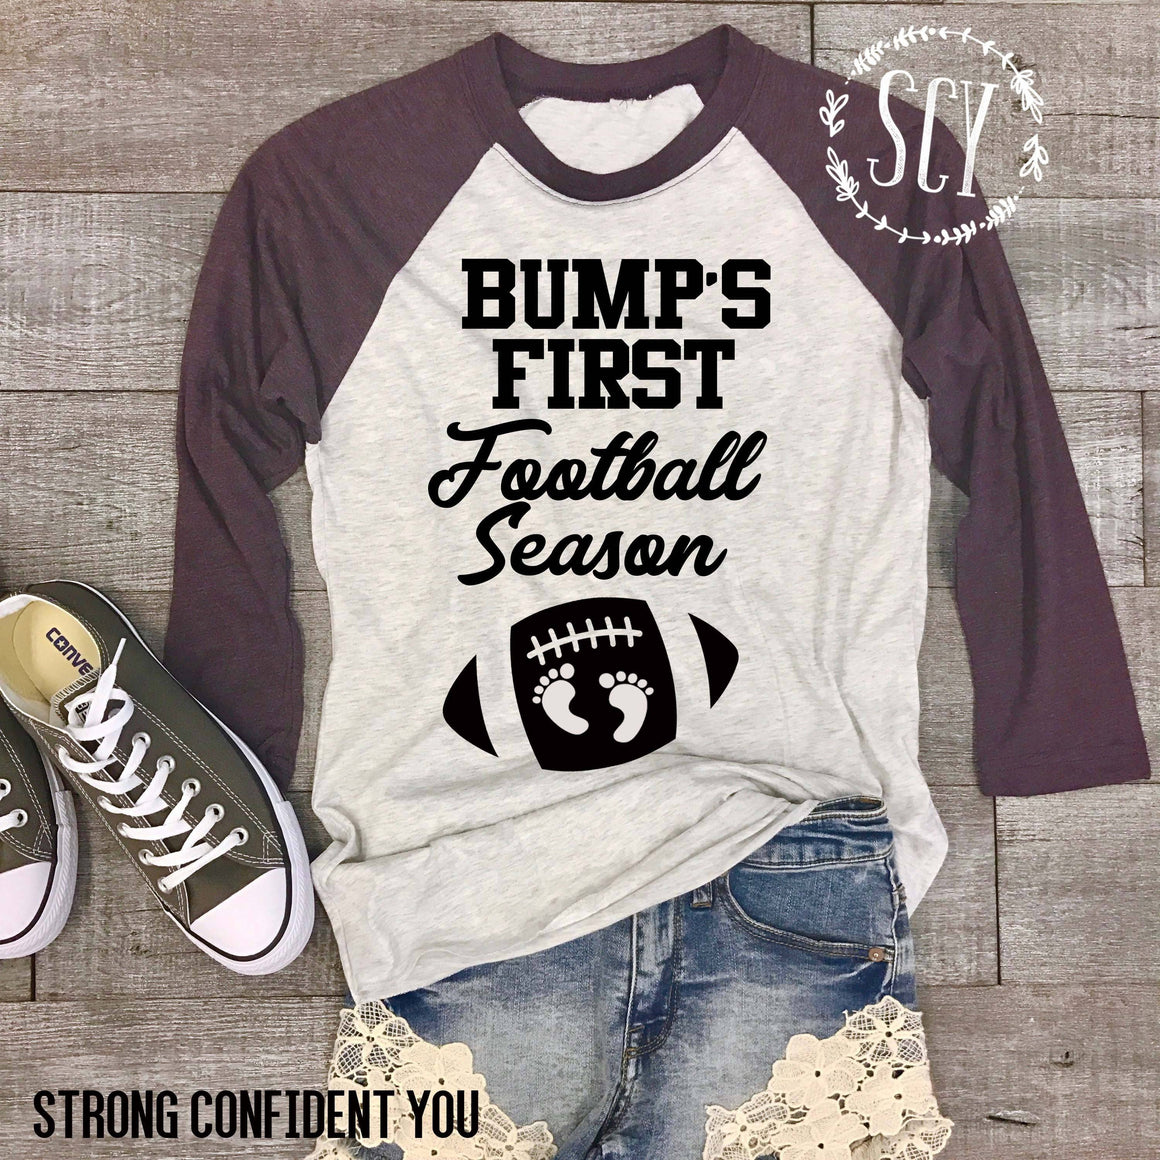 Bump's First™ Football Season